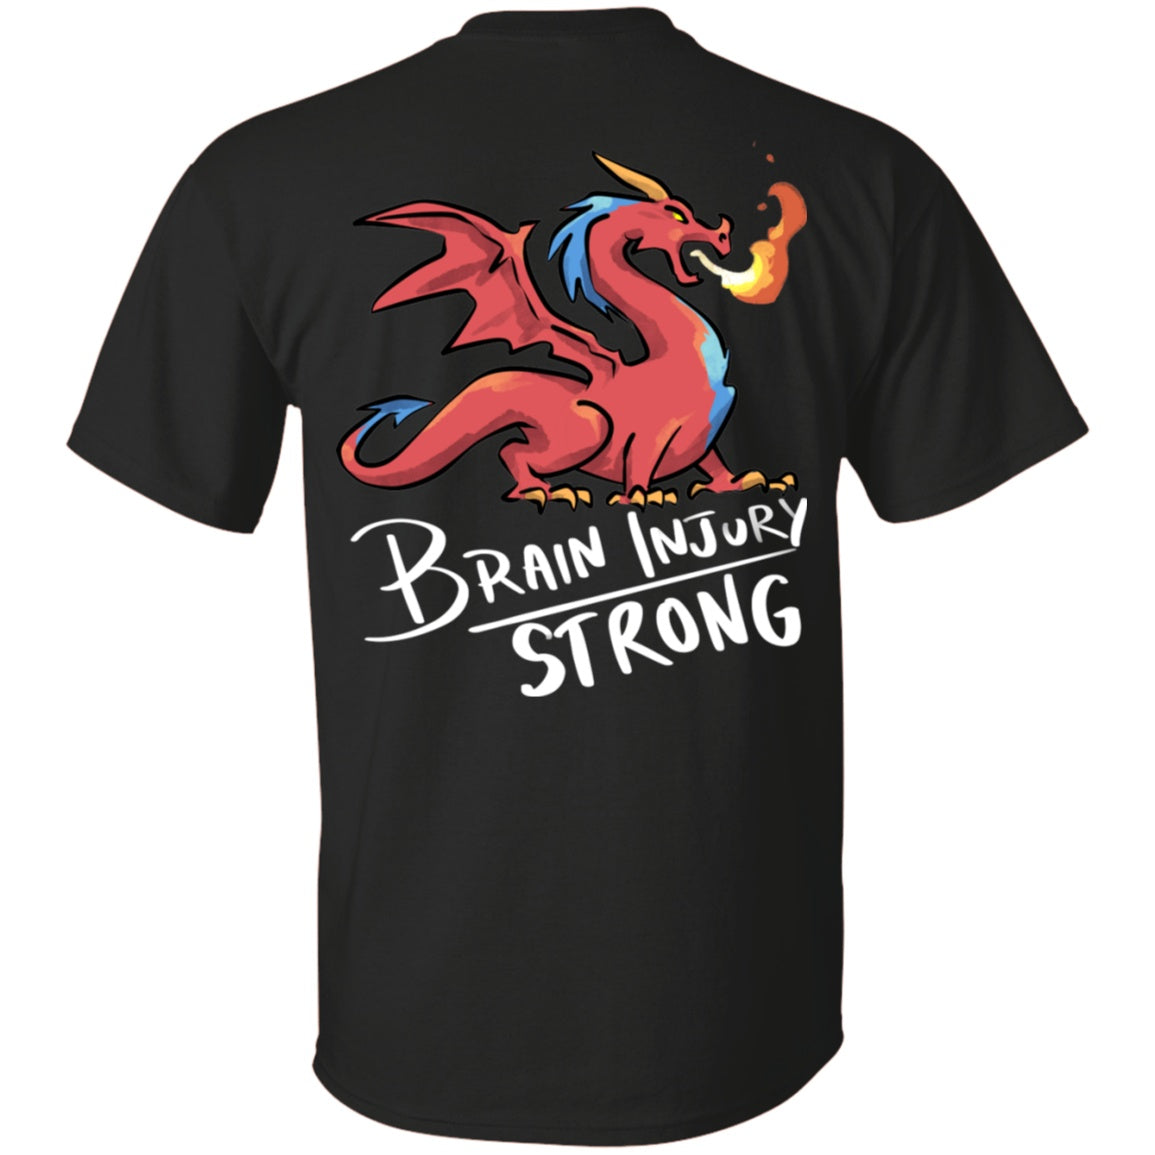 Brain Injury Strong Dragon Unisex T-Shirt - The Unchargeables